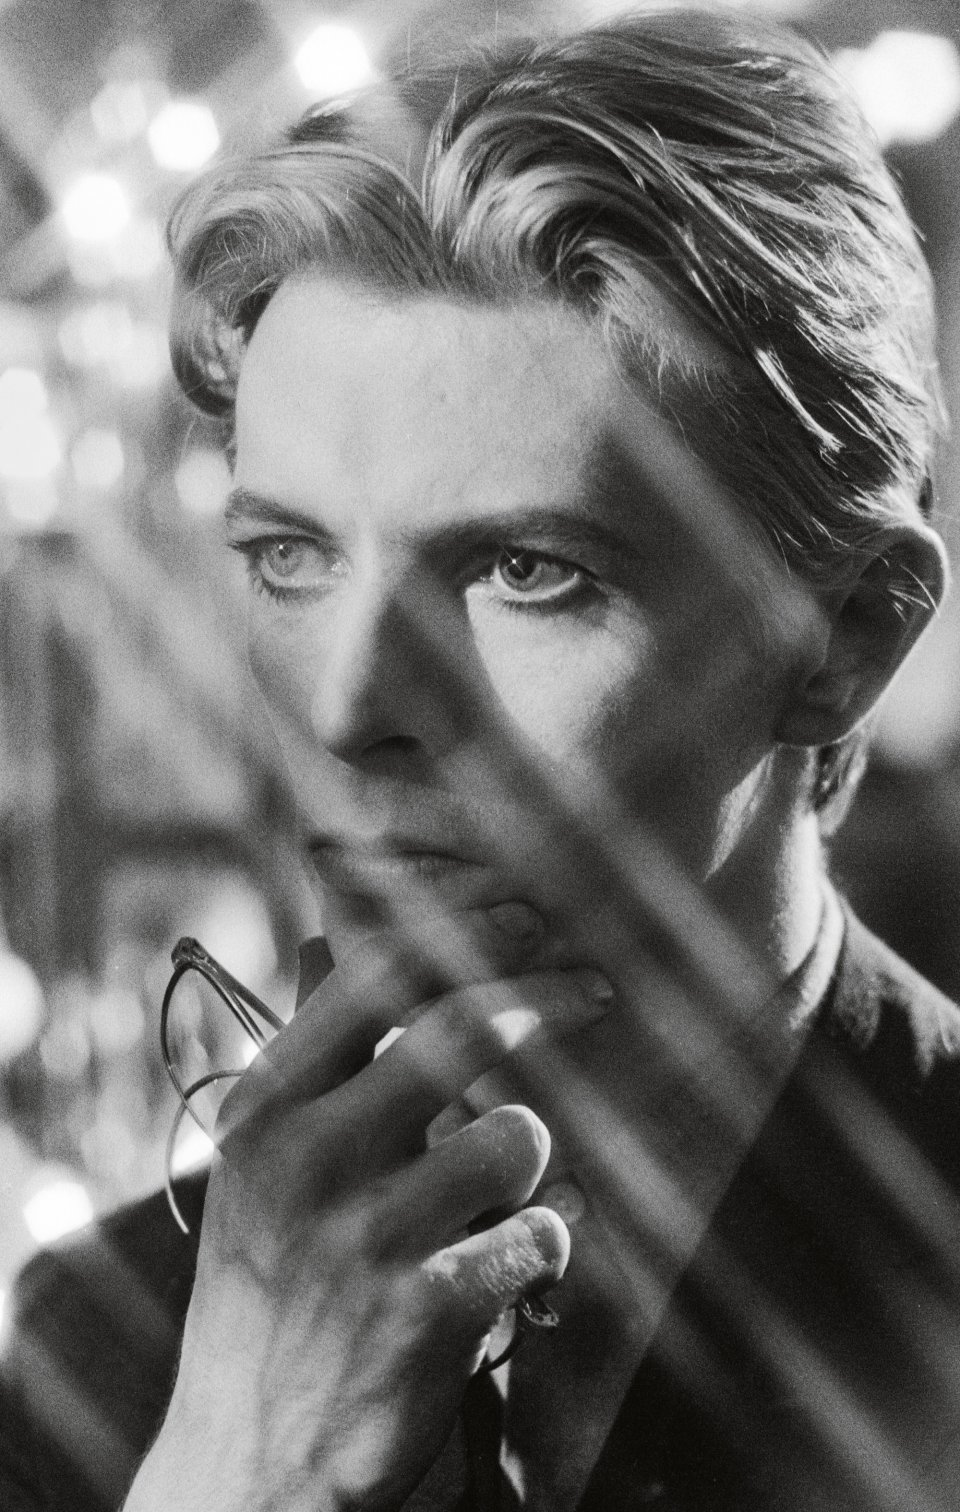 bowie_man_who_fell_to_earth_p050_1710091722_id_1150825